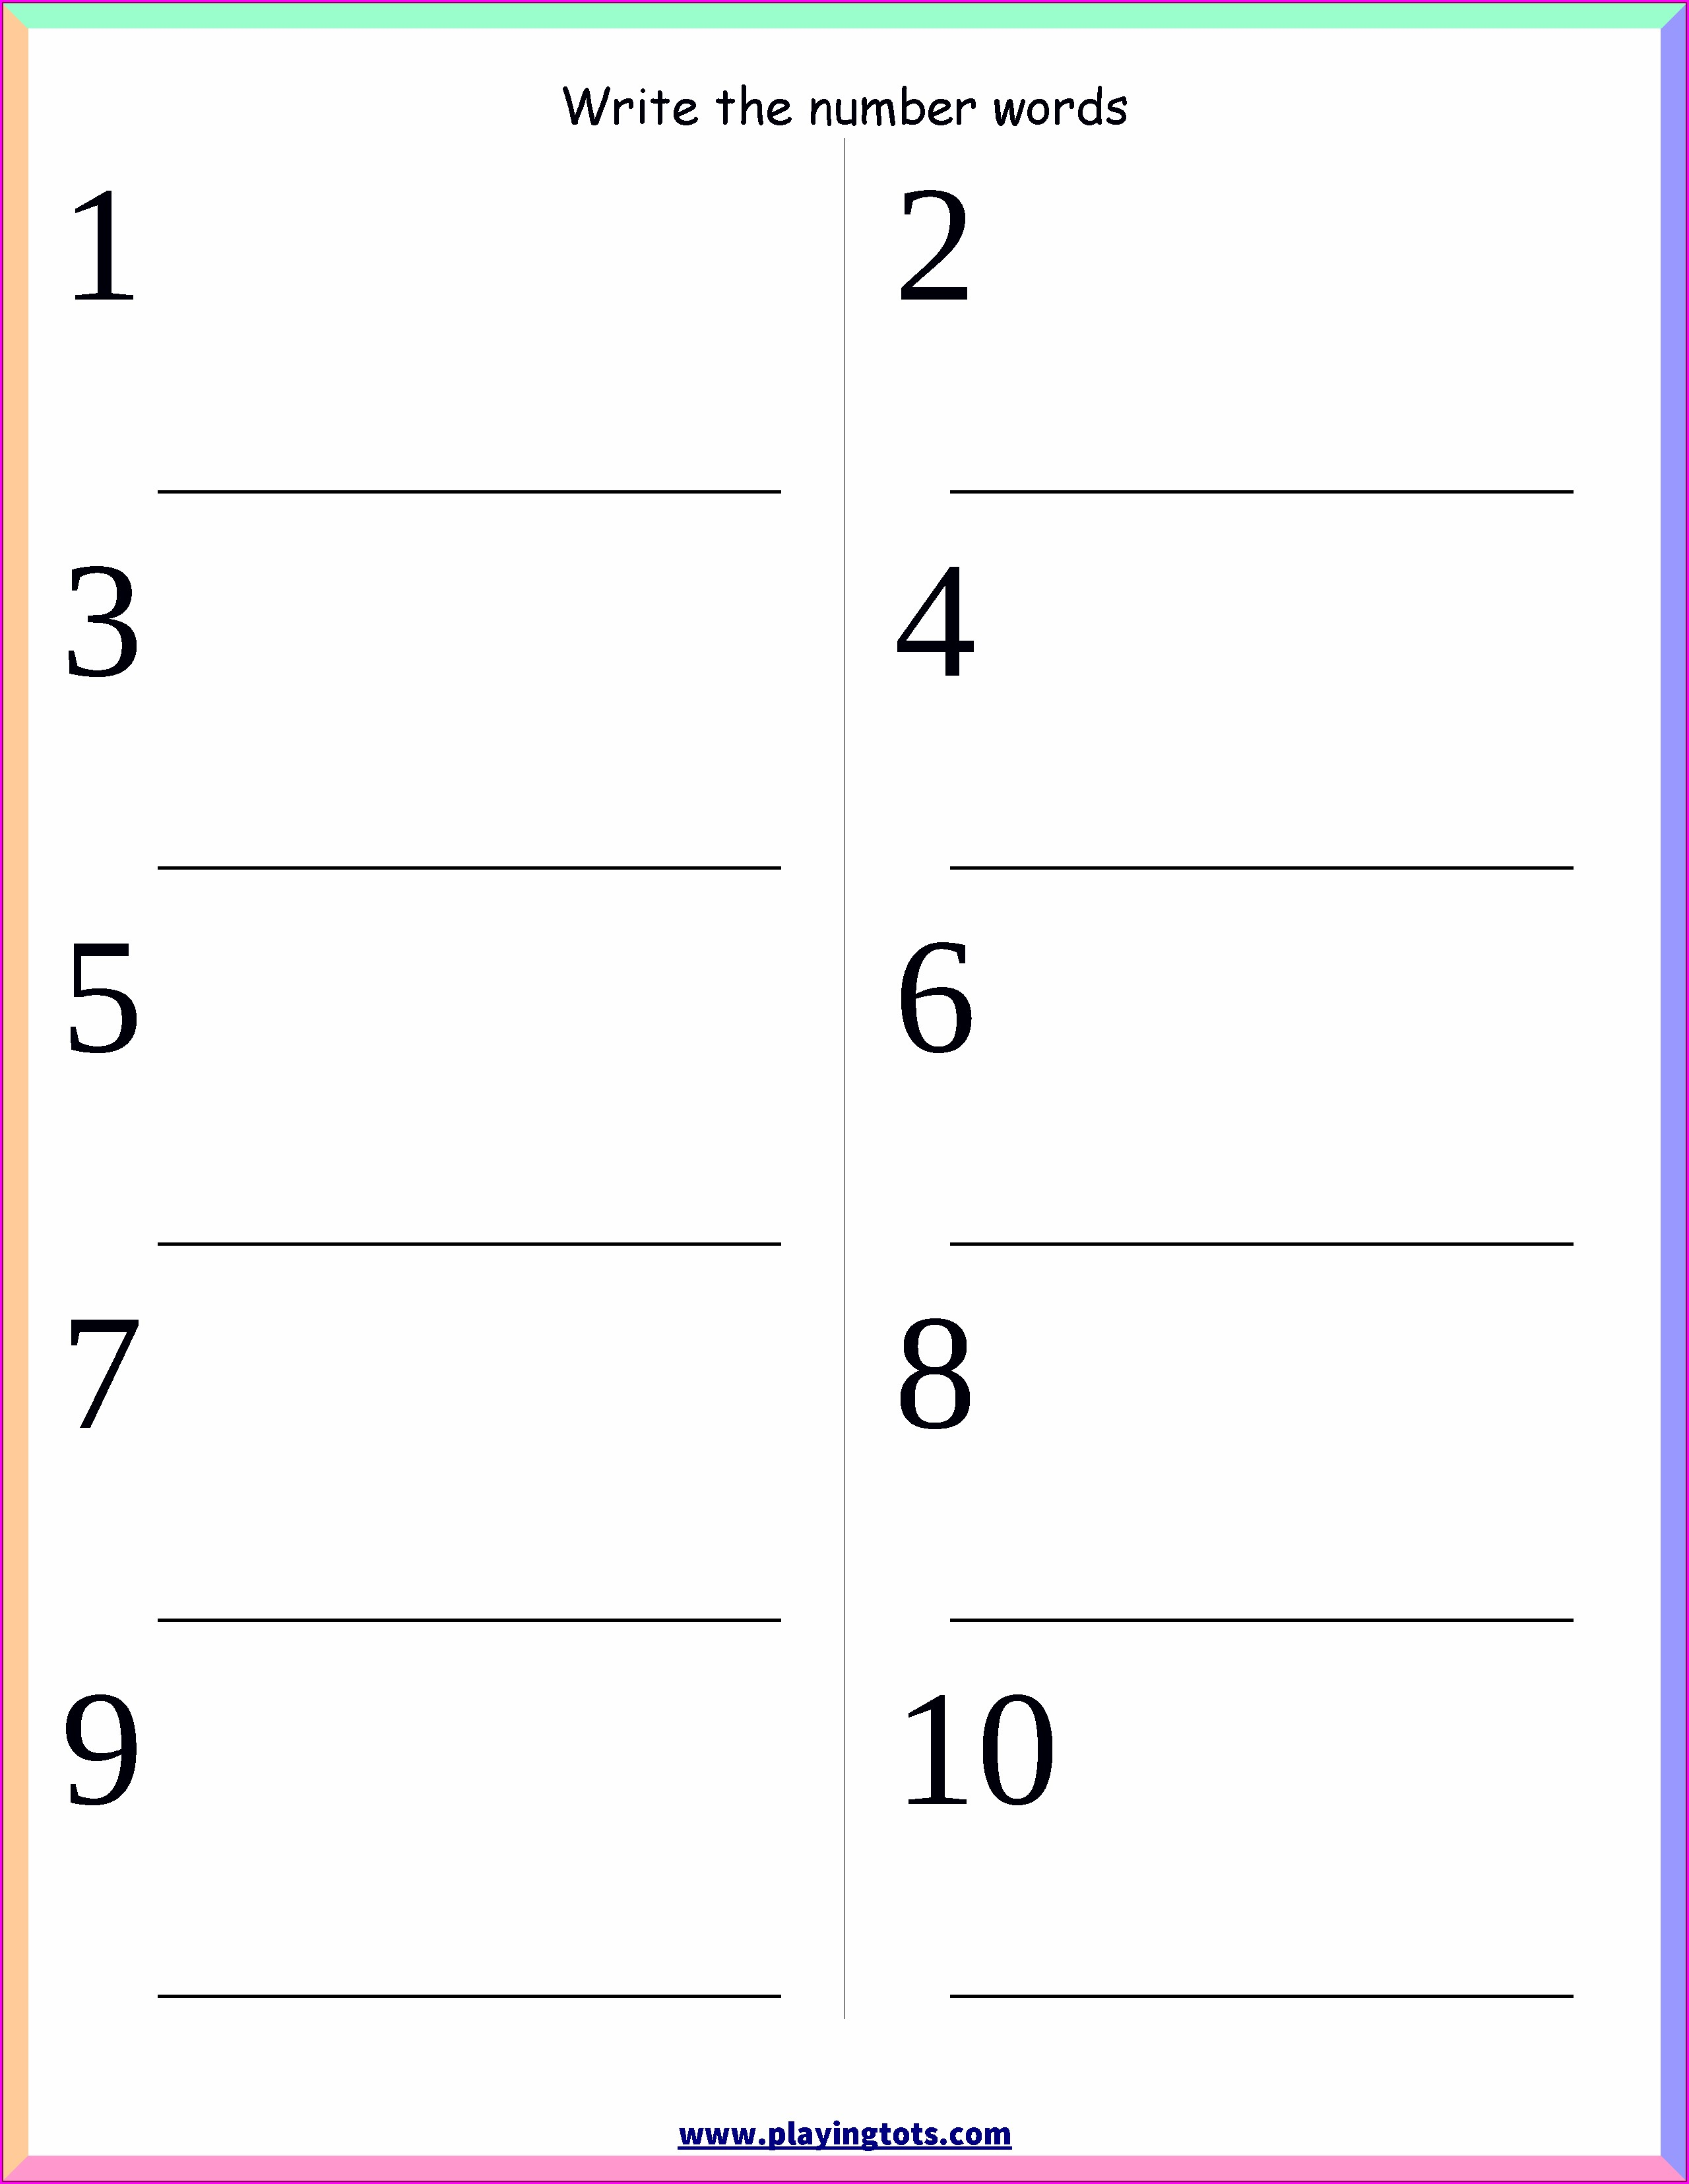 Writing Number Words Worksheets For Kindergarten